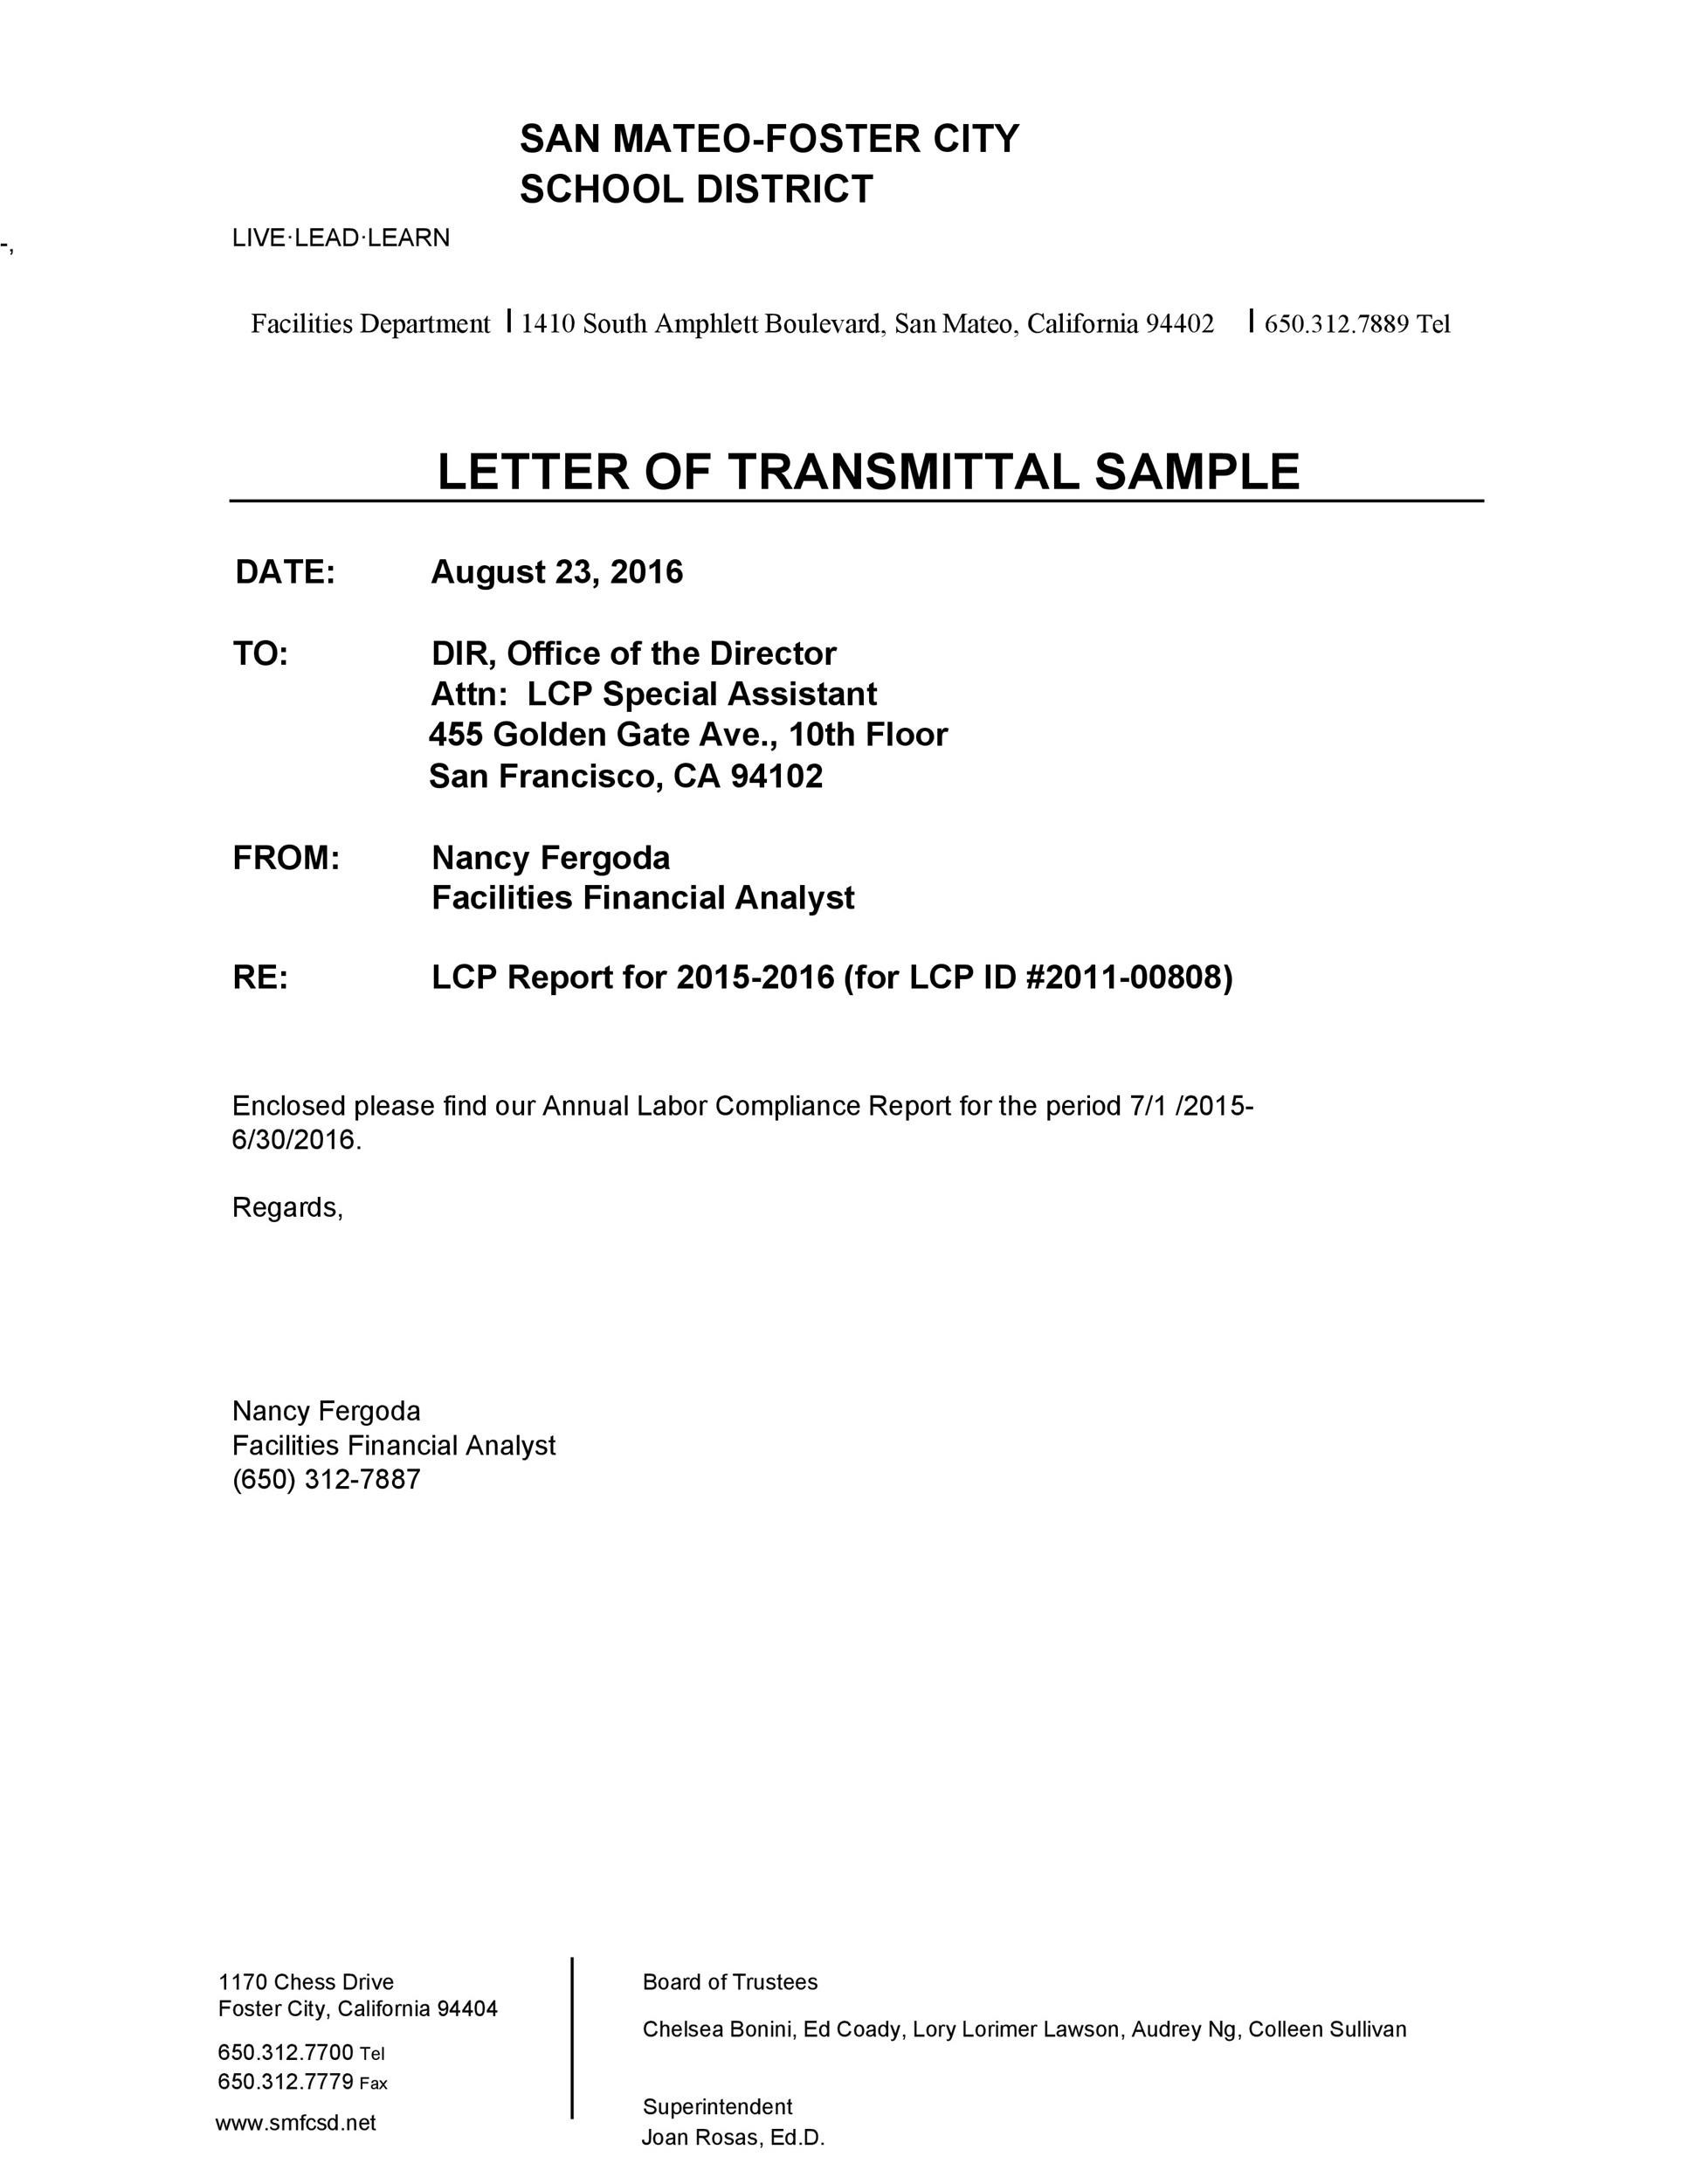 Letter of Transmittal   40+ Great Examples & Templates ᐅ Template Lab